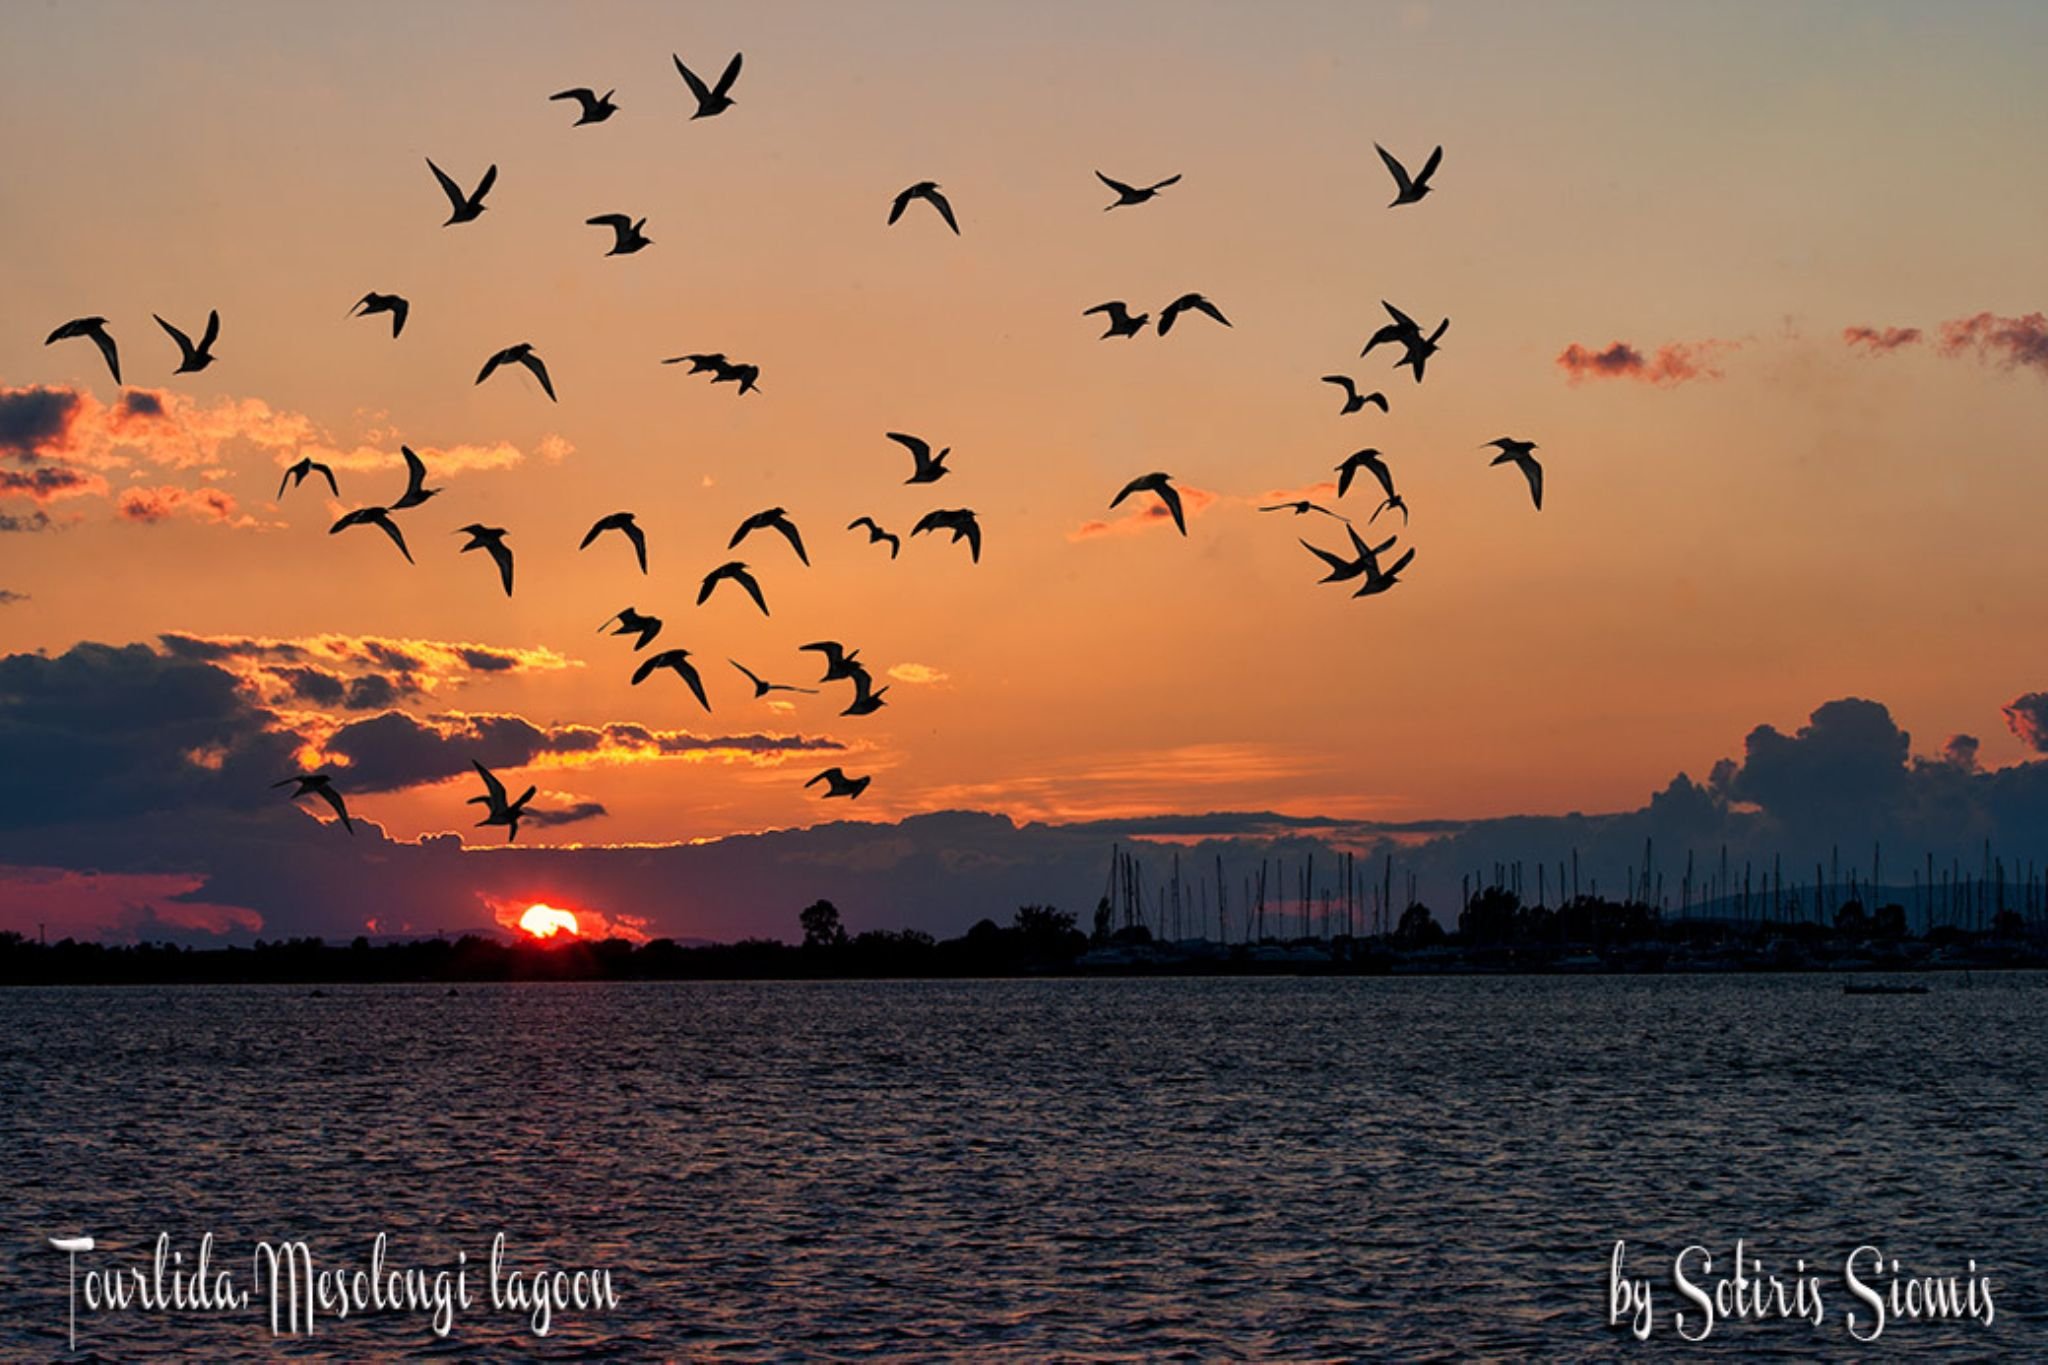 Birds in sunset by Sotiris Siomis